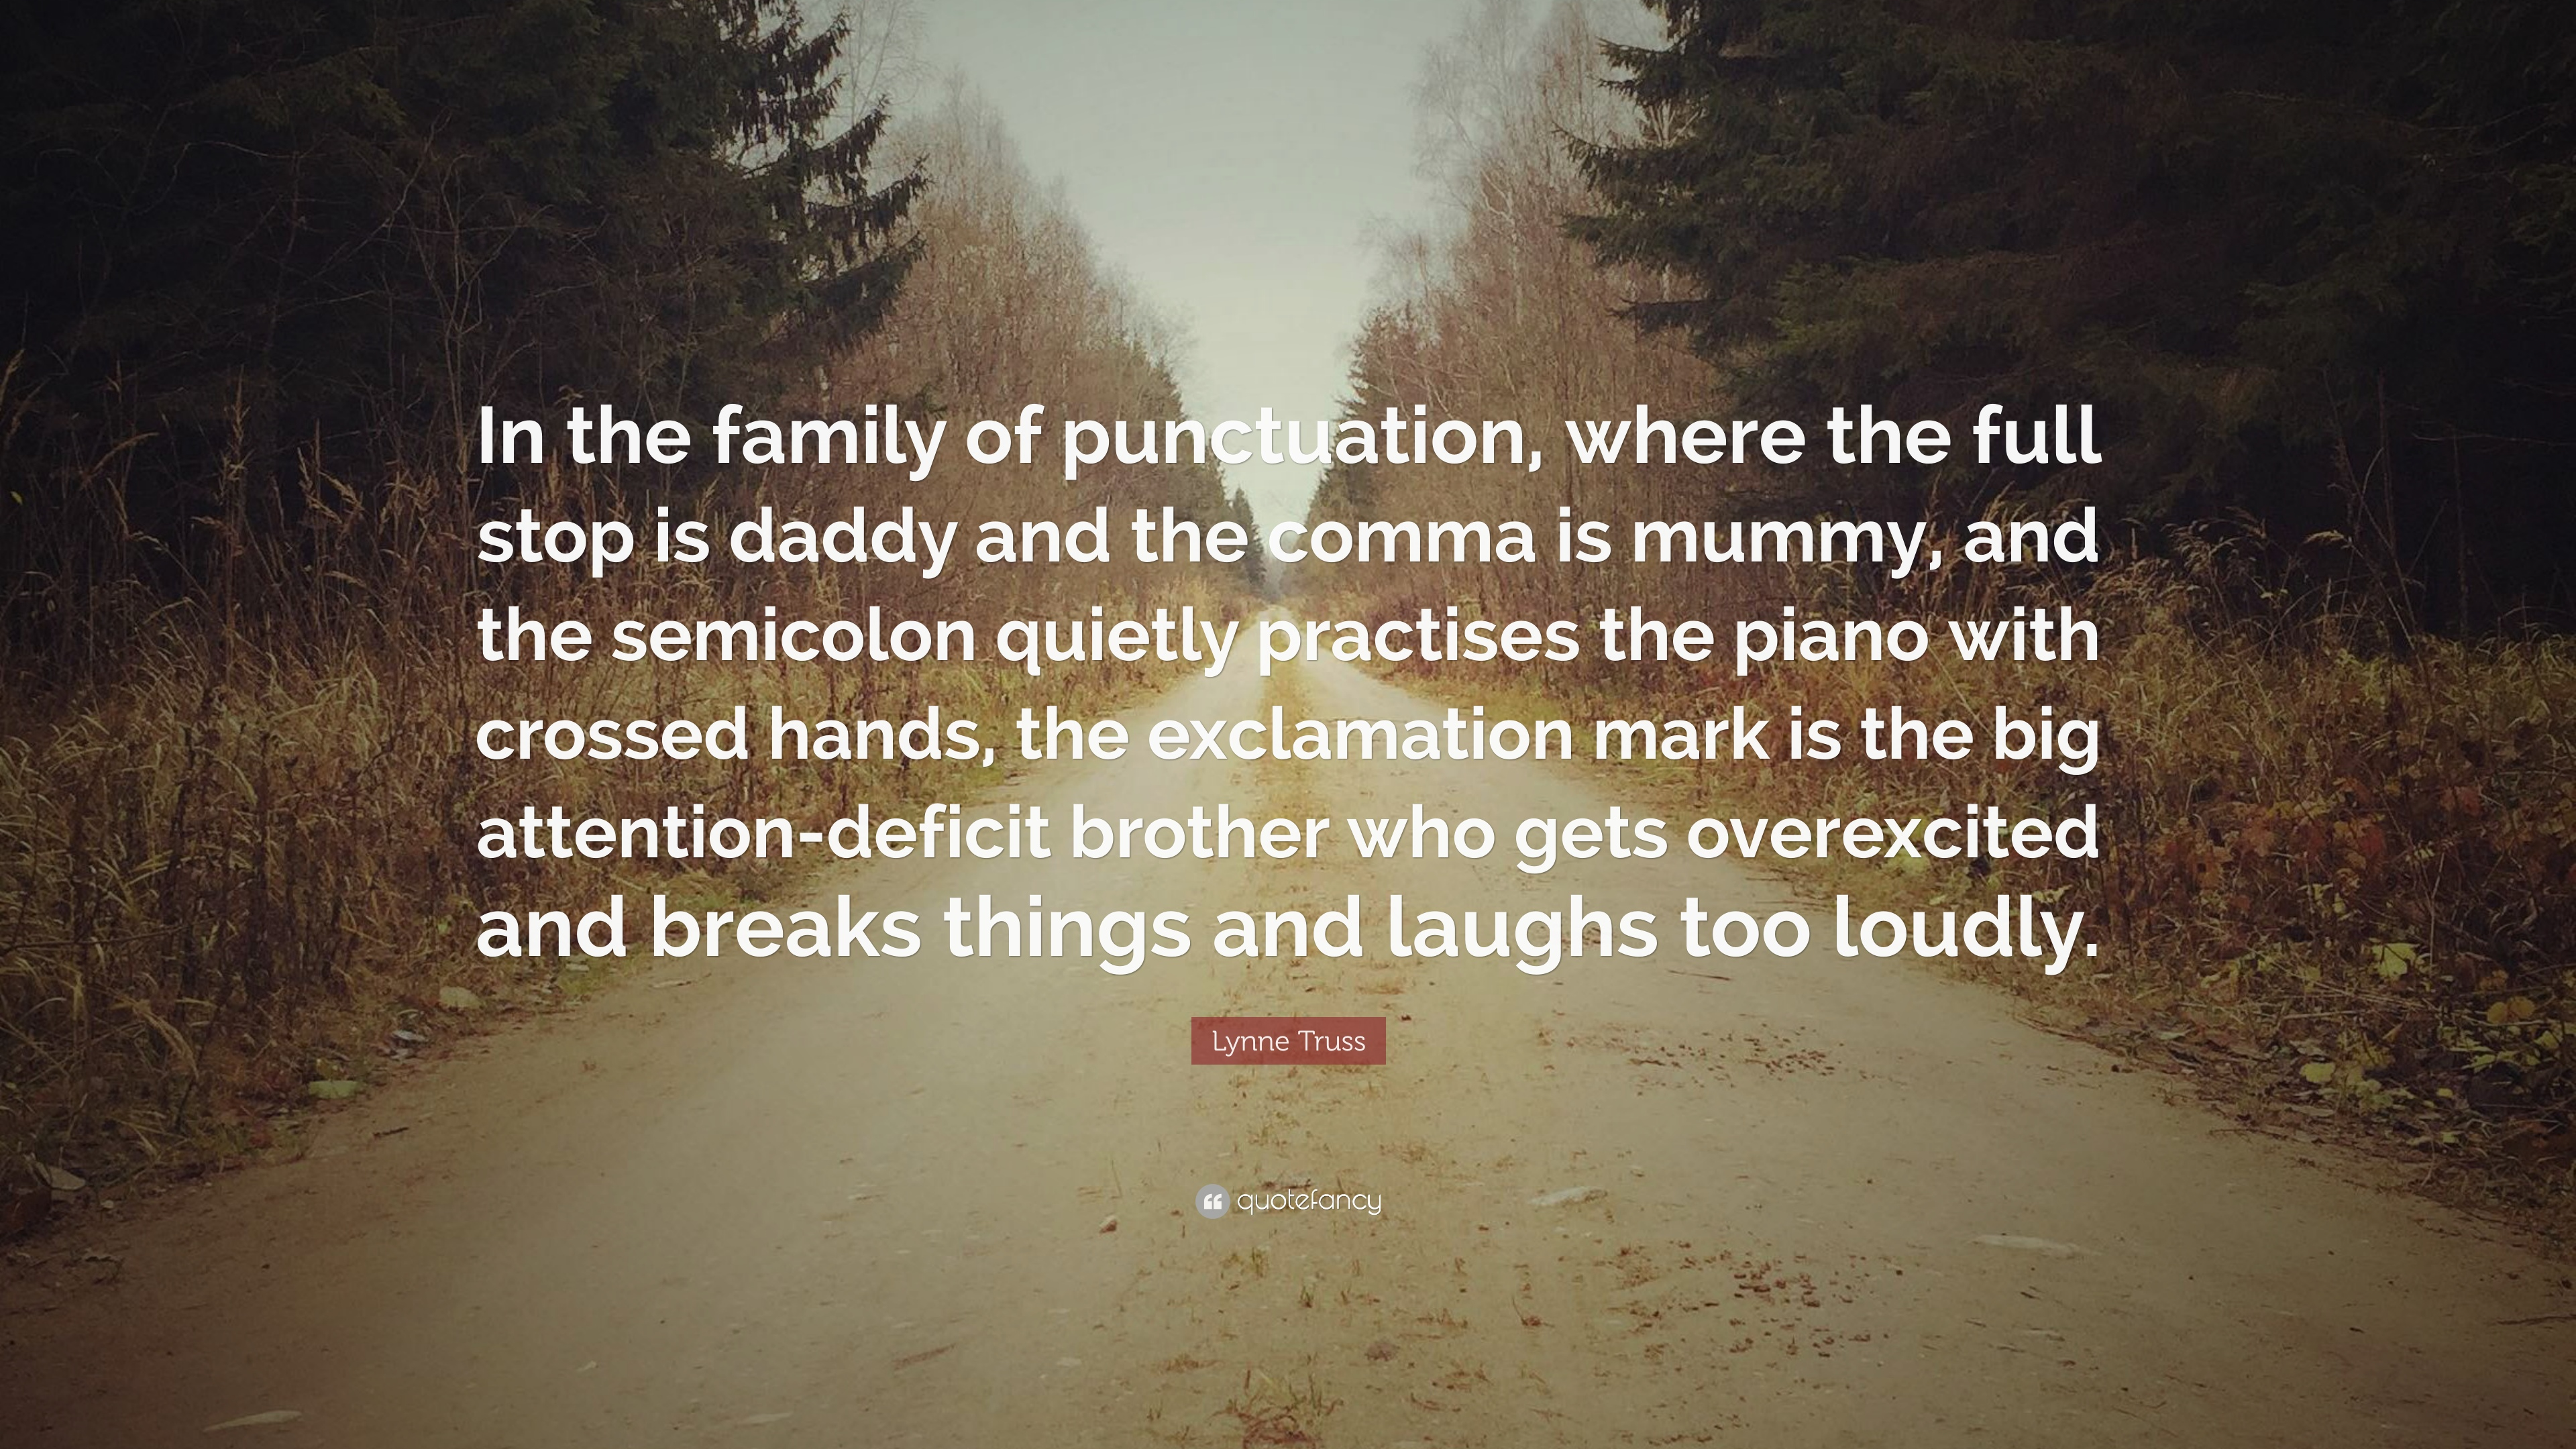 lynne truss quote   u201cin the family of punctuation  where